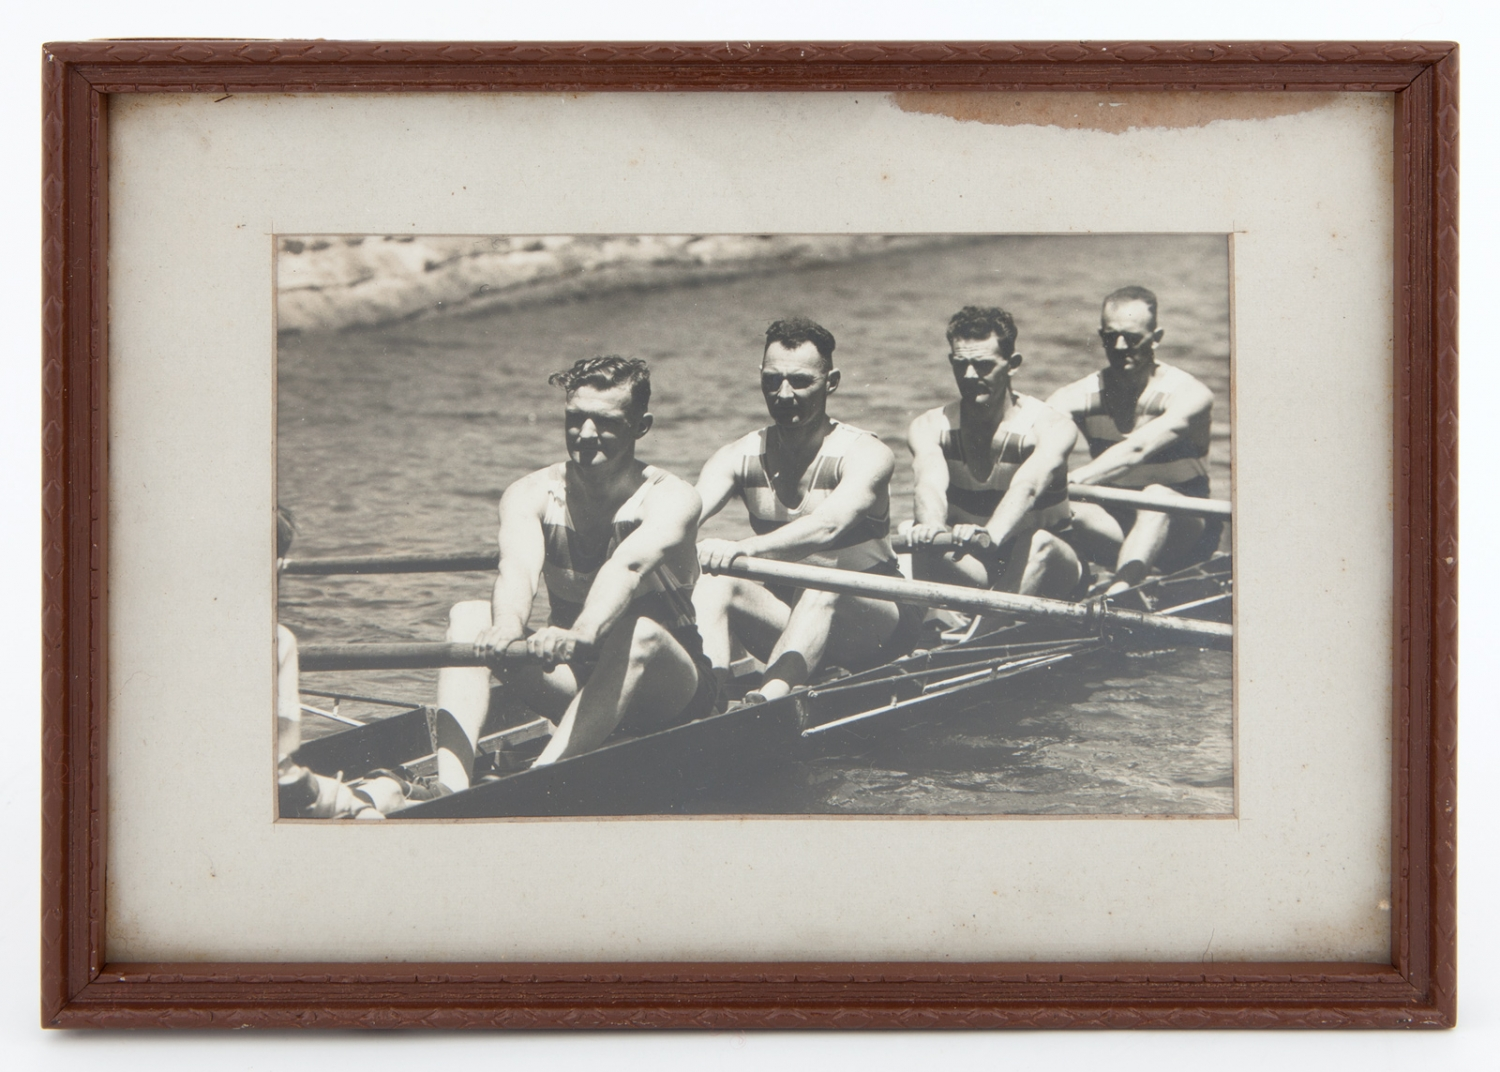 Framed black & white photograph of winning maiden fours team at NSW Police Rowing Club Regatta, March 1935 / [Sydney] Telegraph photograph